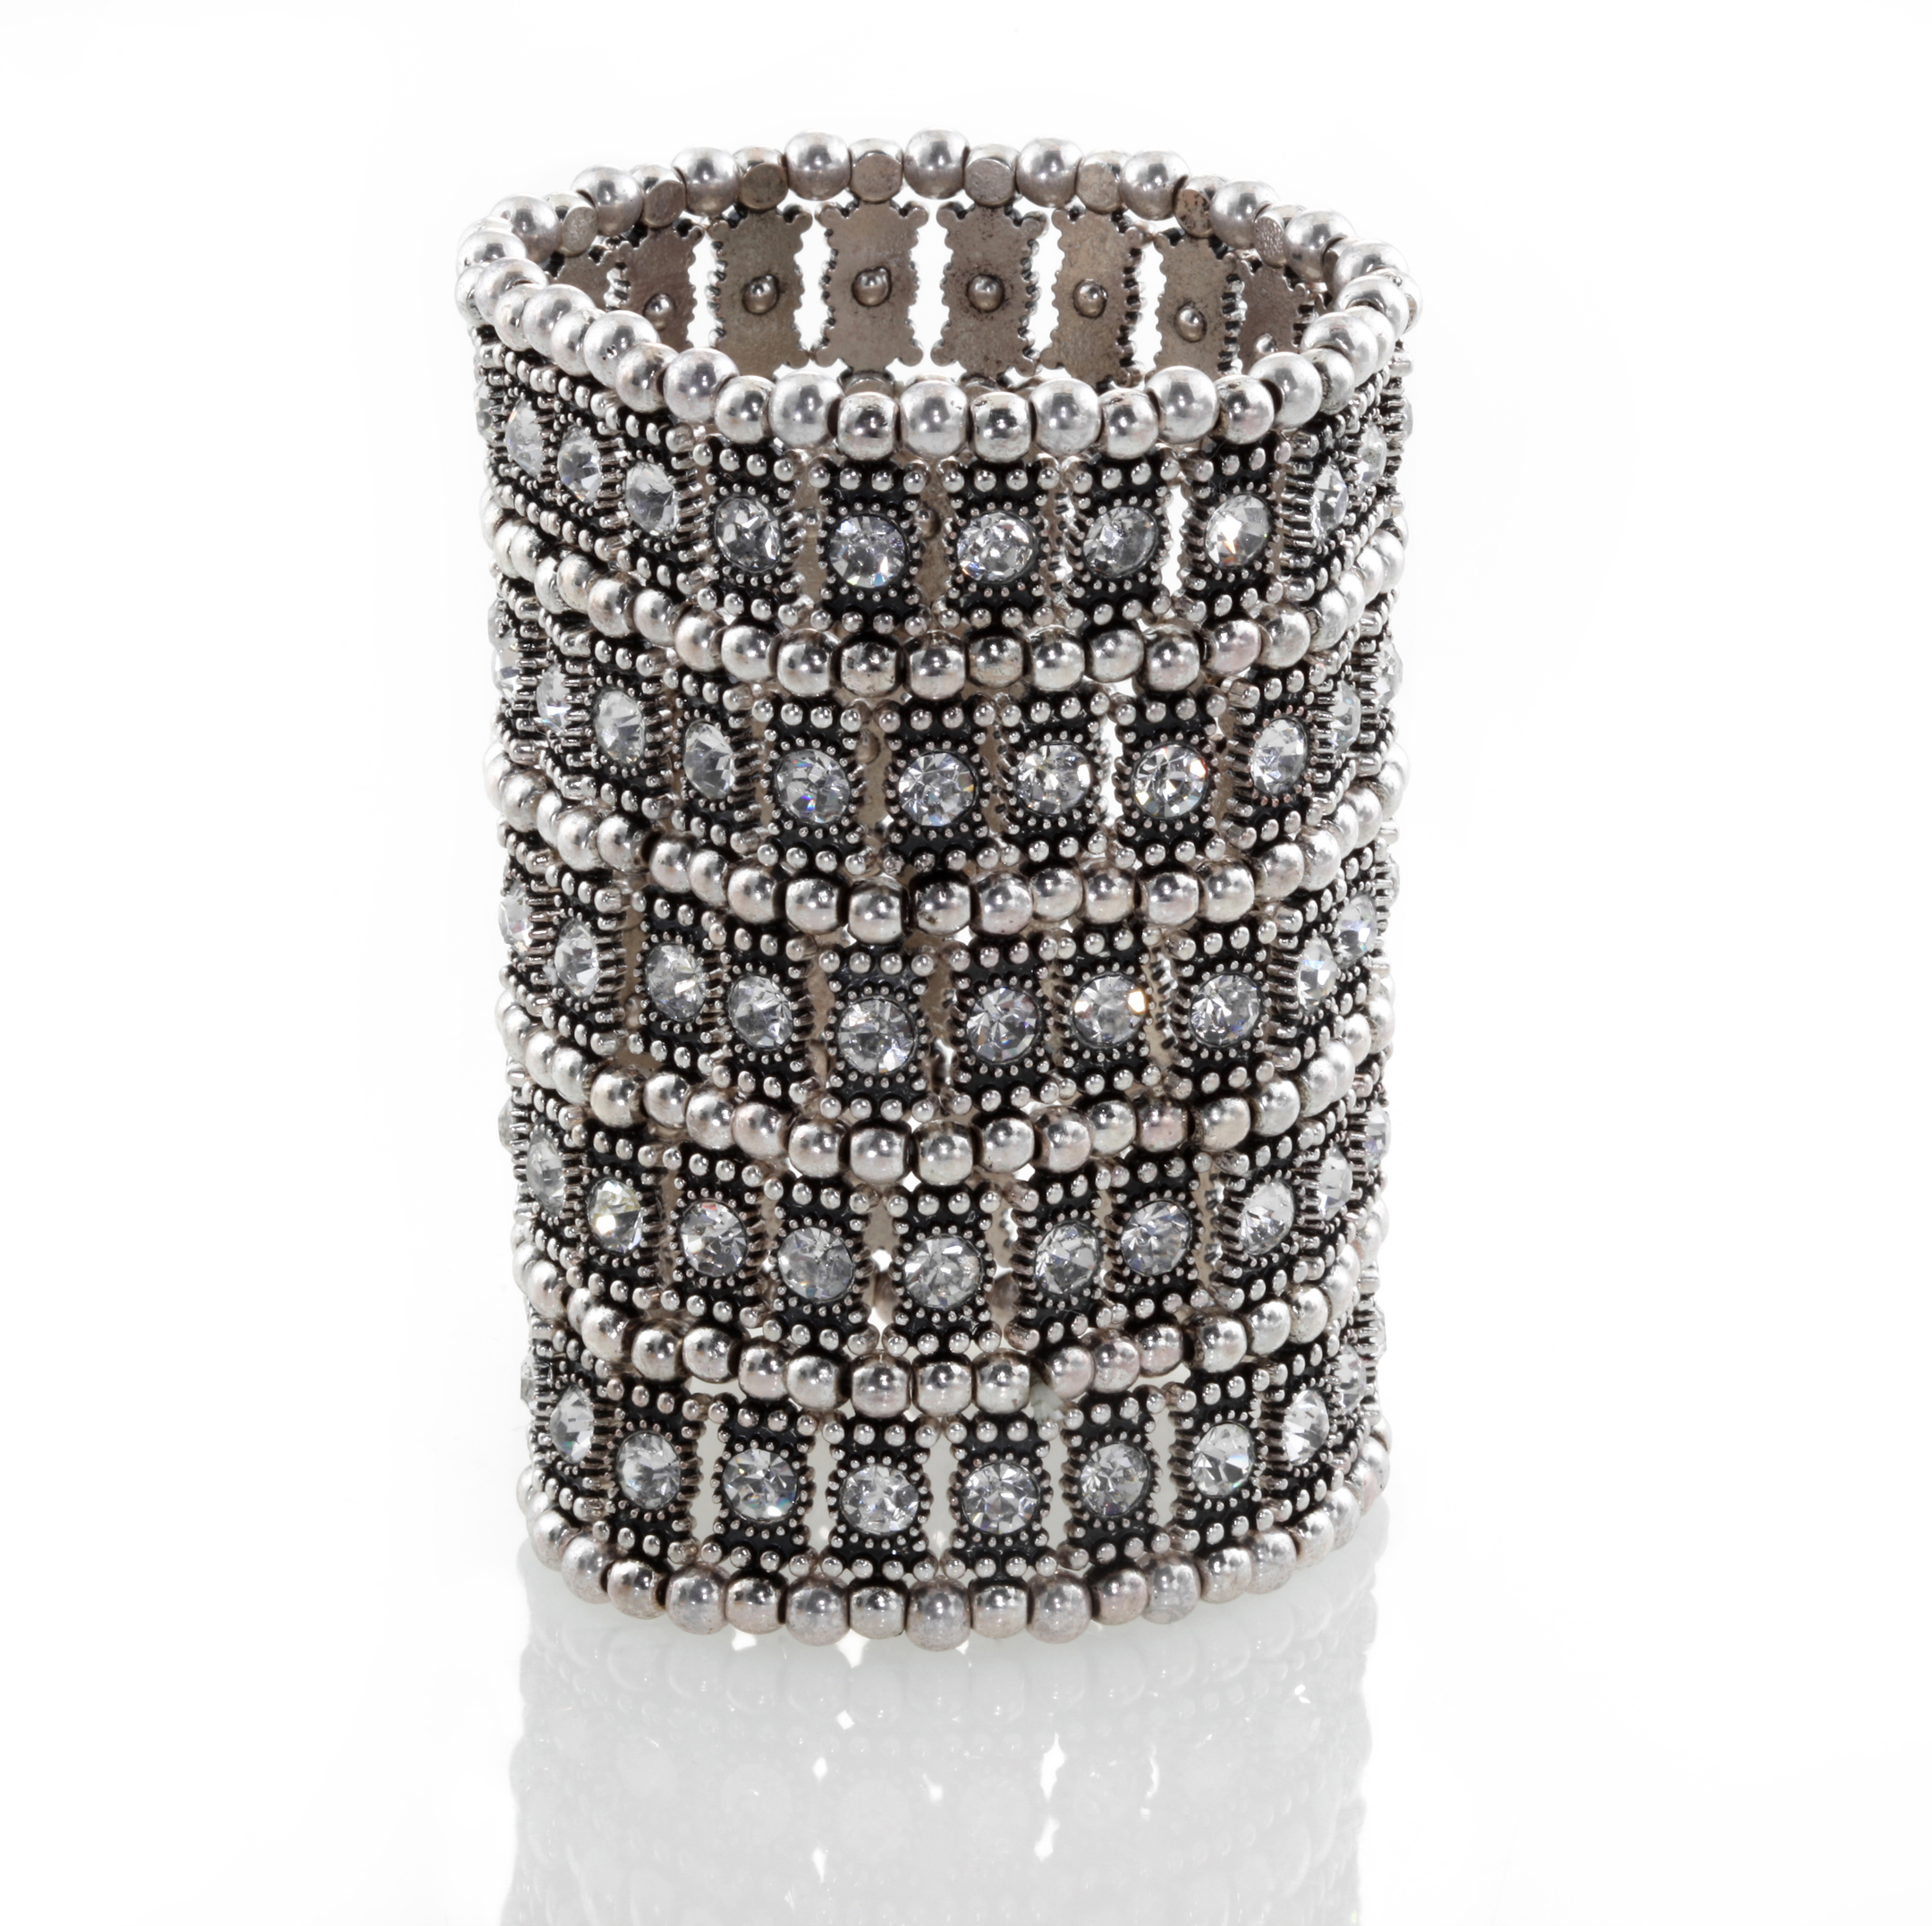 The Housewives Jewelry » Kyle s Incredibly Chic Wide Cuff Bracelets fdc6b12664